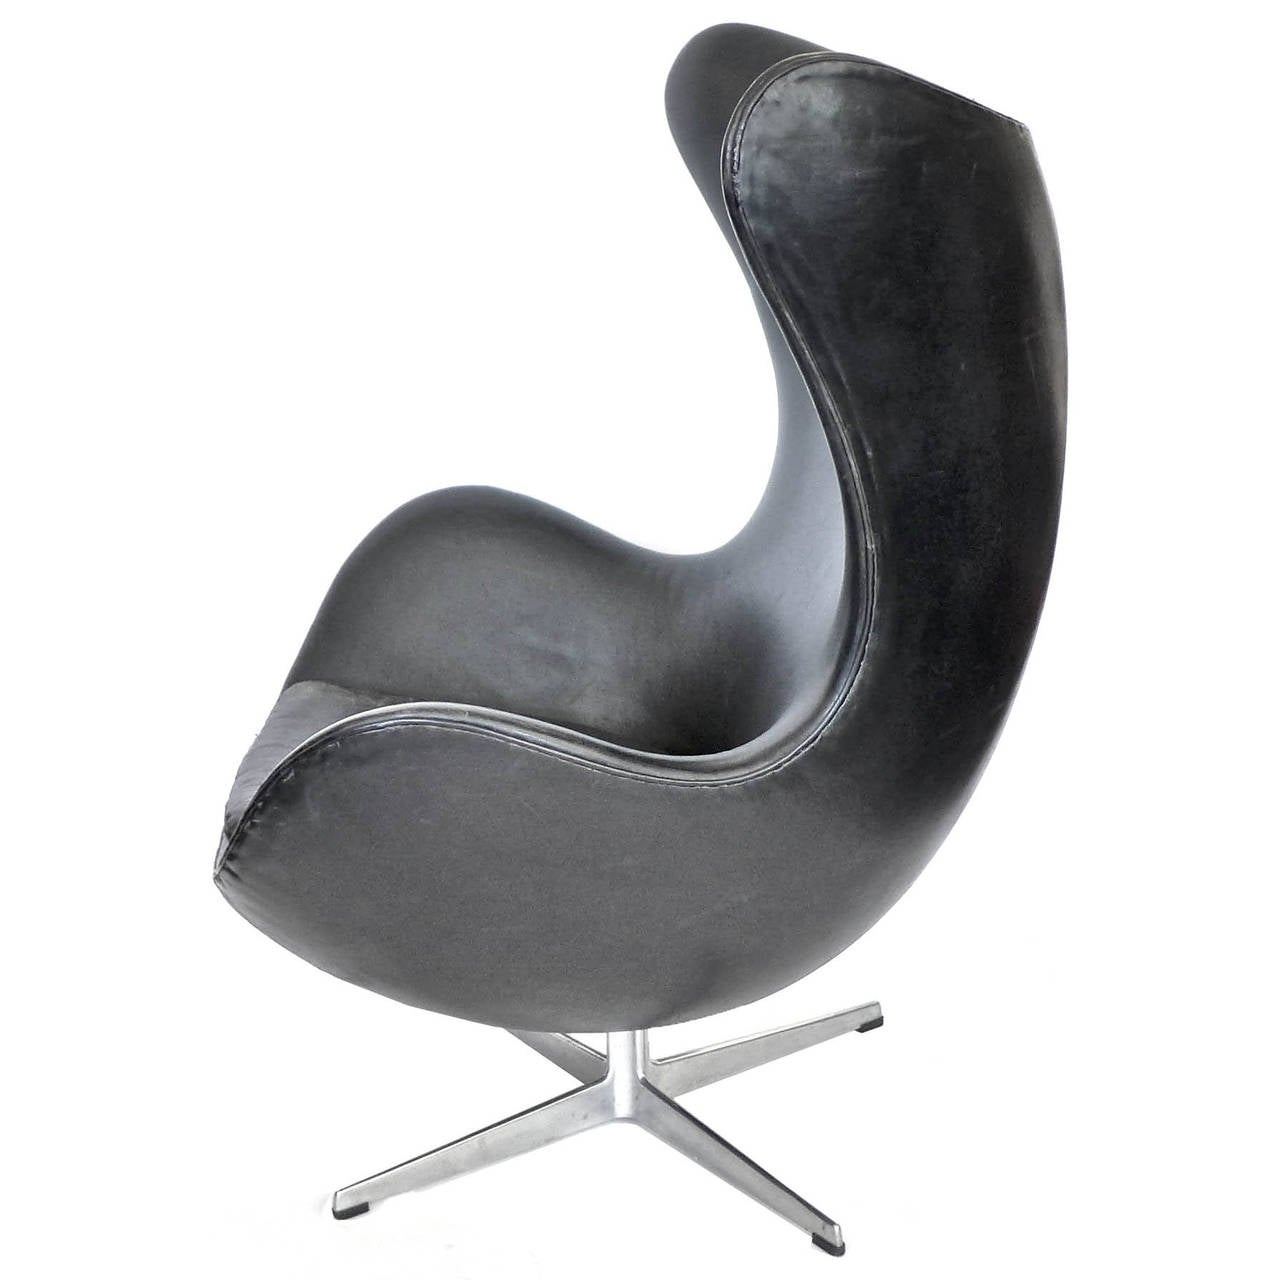 early egg chair and ottoman by arne jacobsen with original black leather for sale at 1stdibs. Black Bedroom Furniture Sets. Home Design Ideas